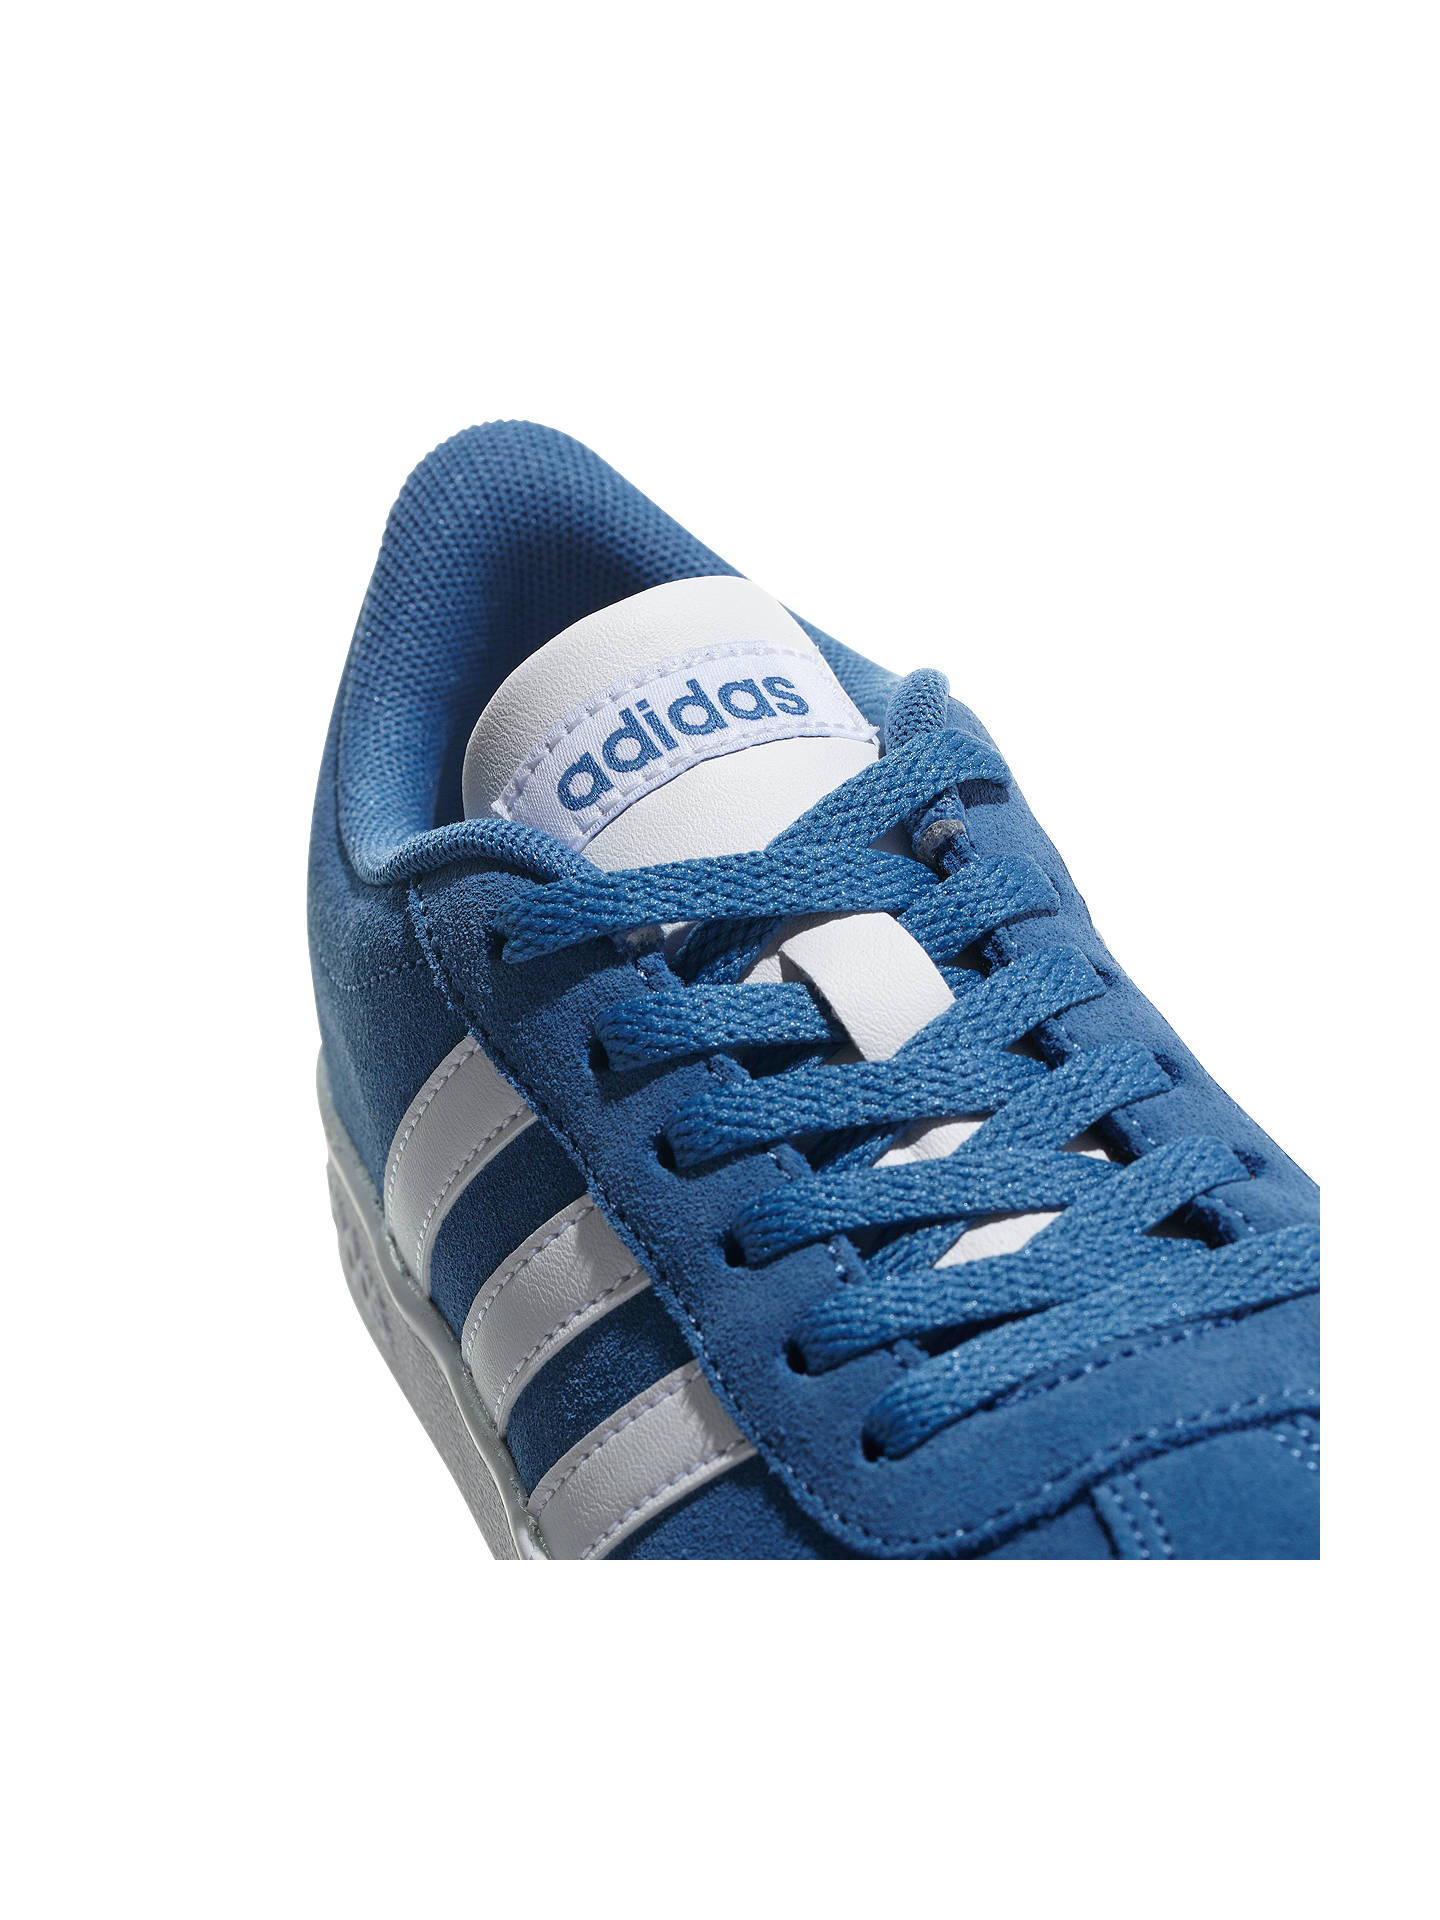 adidas Junior VL Court 2.0 Trainers at John Lewis & Partners